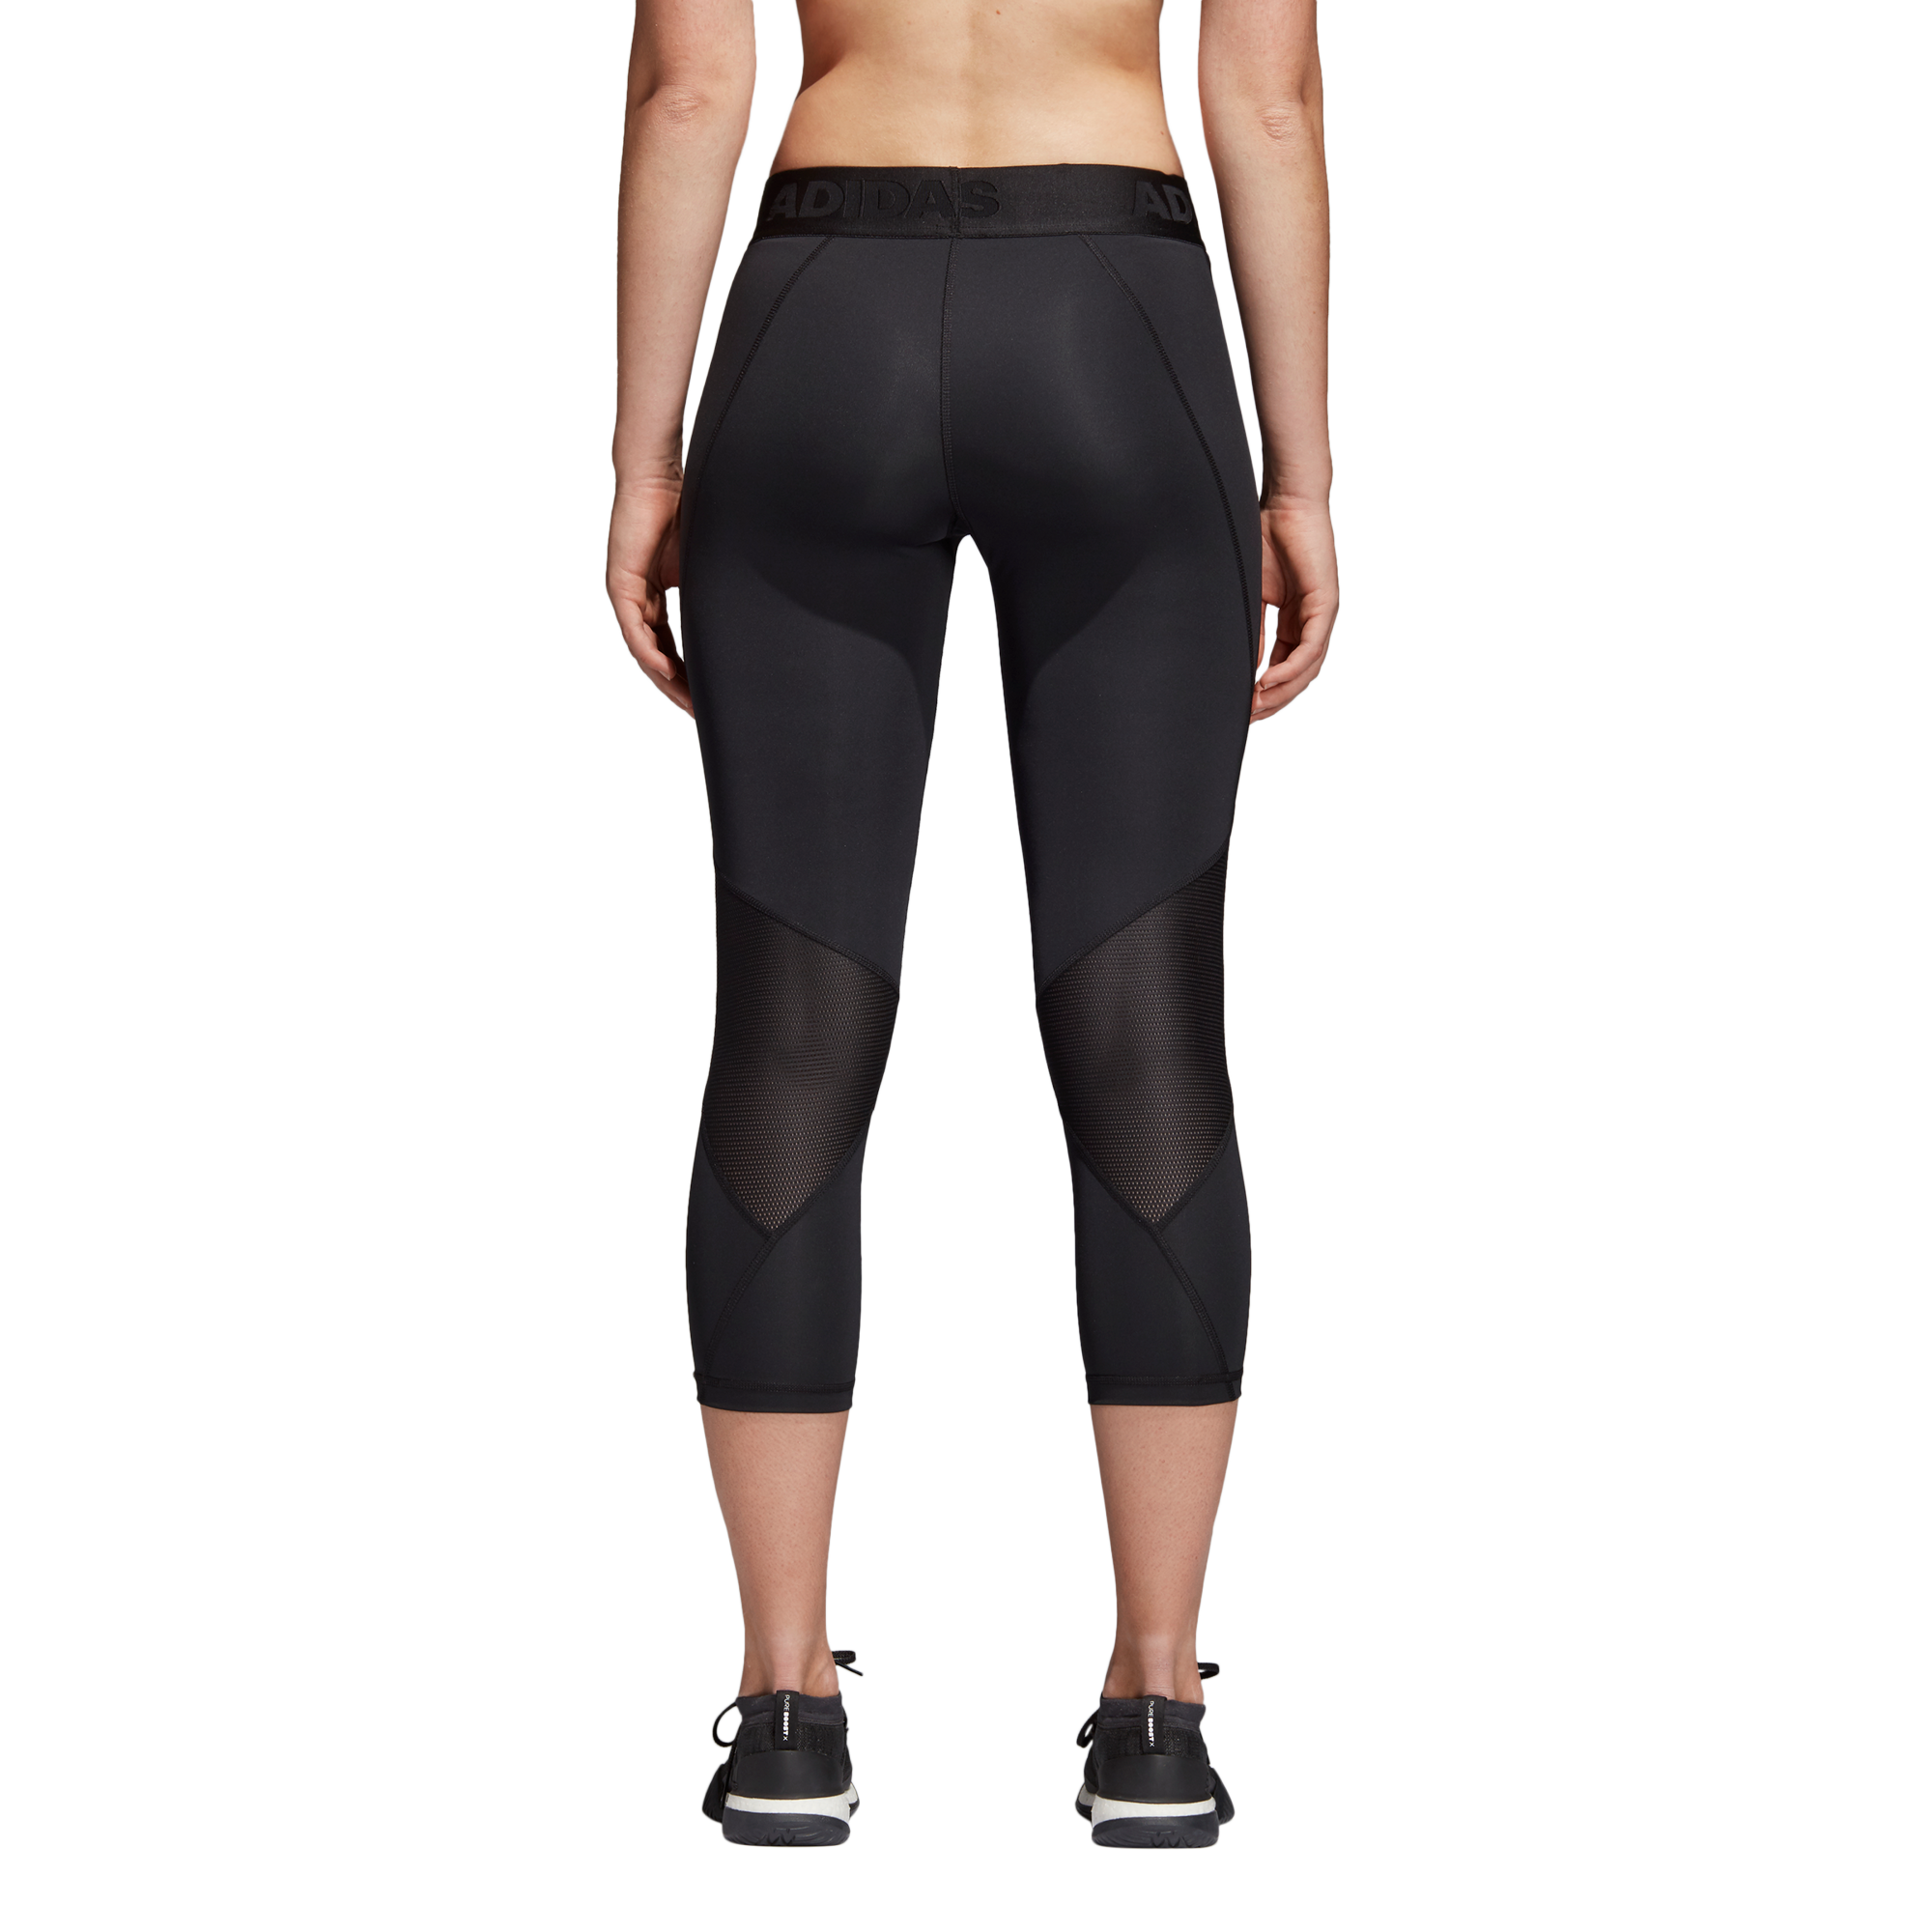 adidas alphaskin 3 4 sport tights nz gallery store nz. Black Bedroom Furniture Sets. Home Design Ideas